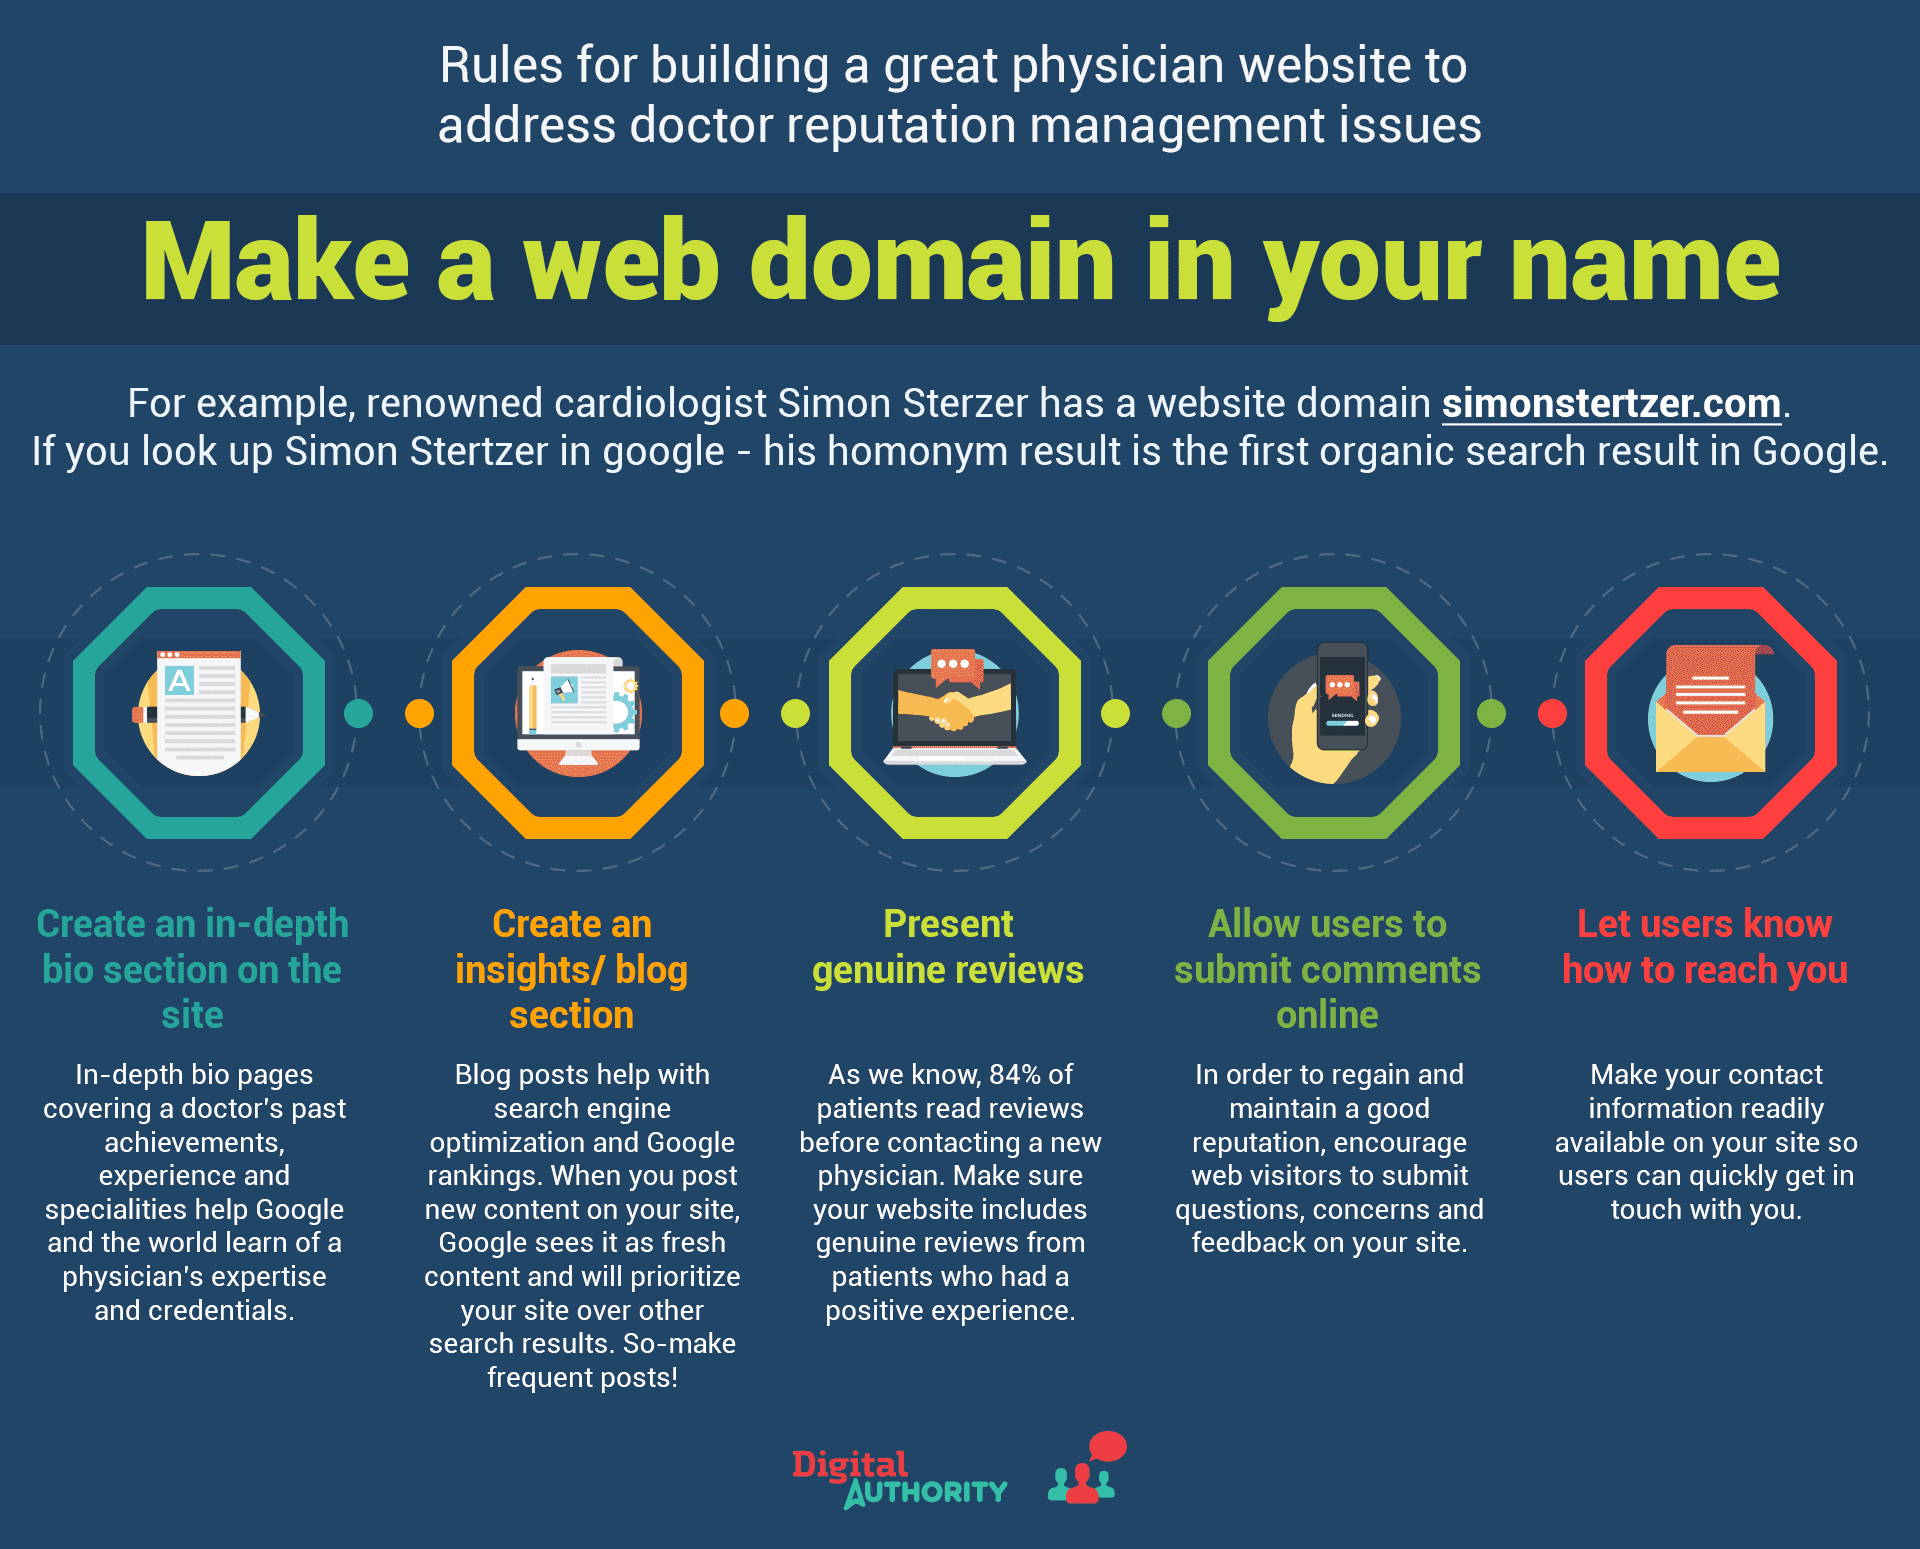 Rules for building a great physician website to address doctor reputation management issues: Make a web domain in your name.